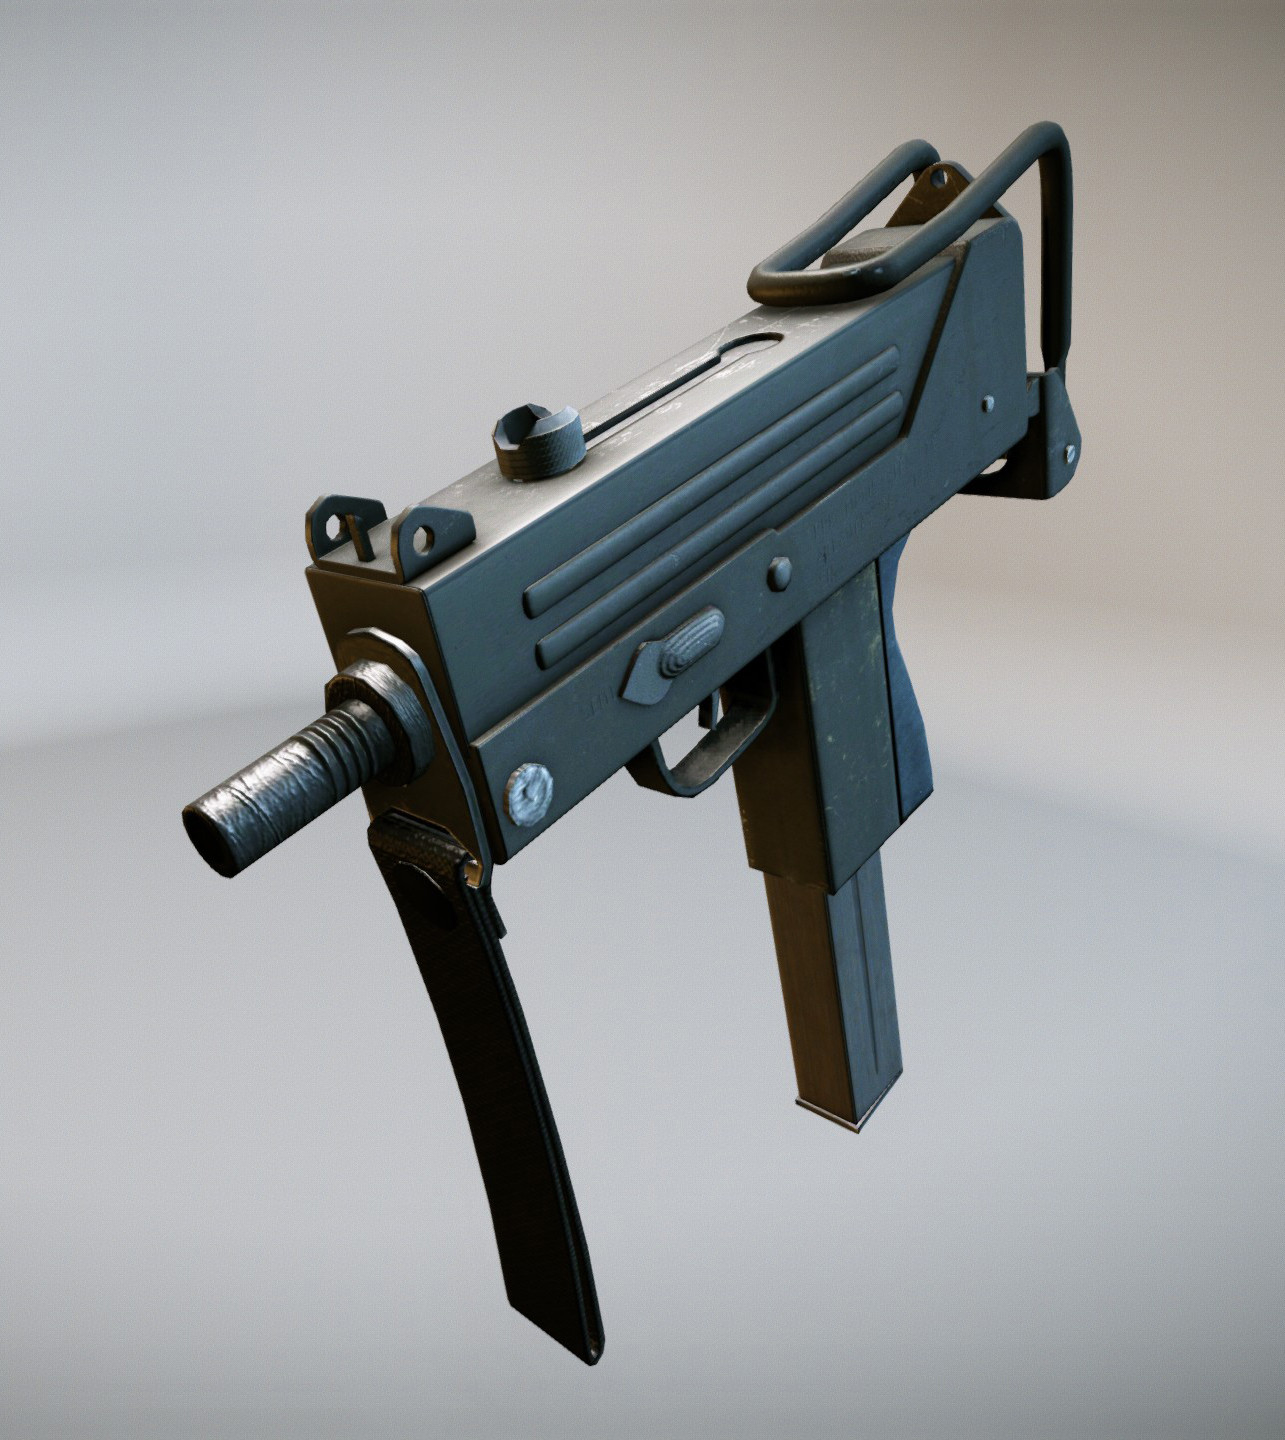 Guns The Military Uses >> mac10 weapon gun 3d model